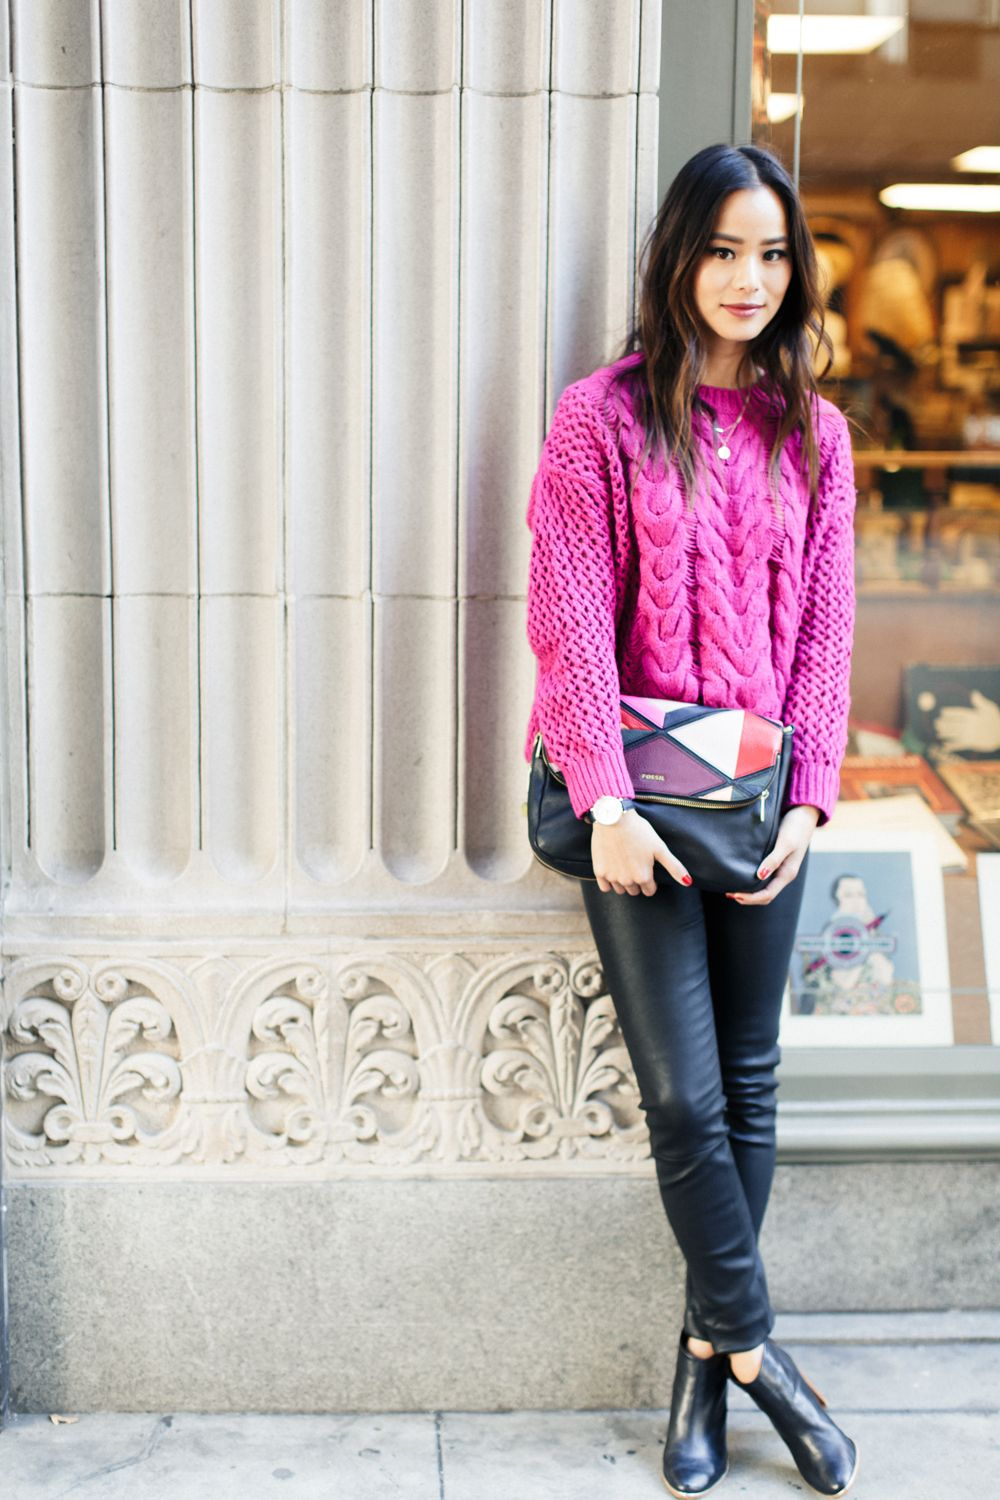 "<p>""Cozy knit sweaters in bright colors are festive enough to wear to a holiday party or dinner, without overdoing it. This bag is perfect to wear as a clutch to a holiday party. It also has a strap that untucks so you can wear it as a crossbody bag while you're out and about running holiday errands.""</p>"